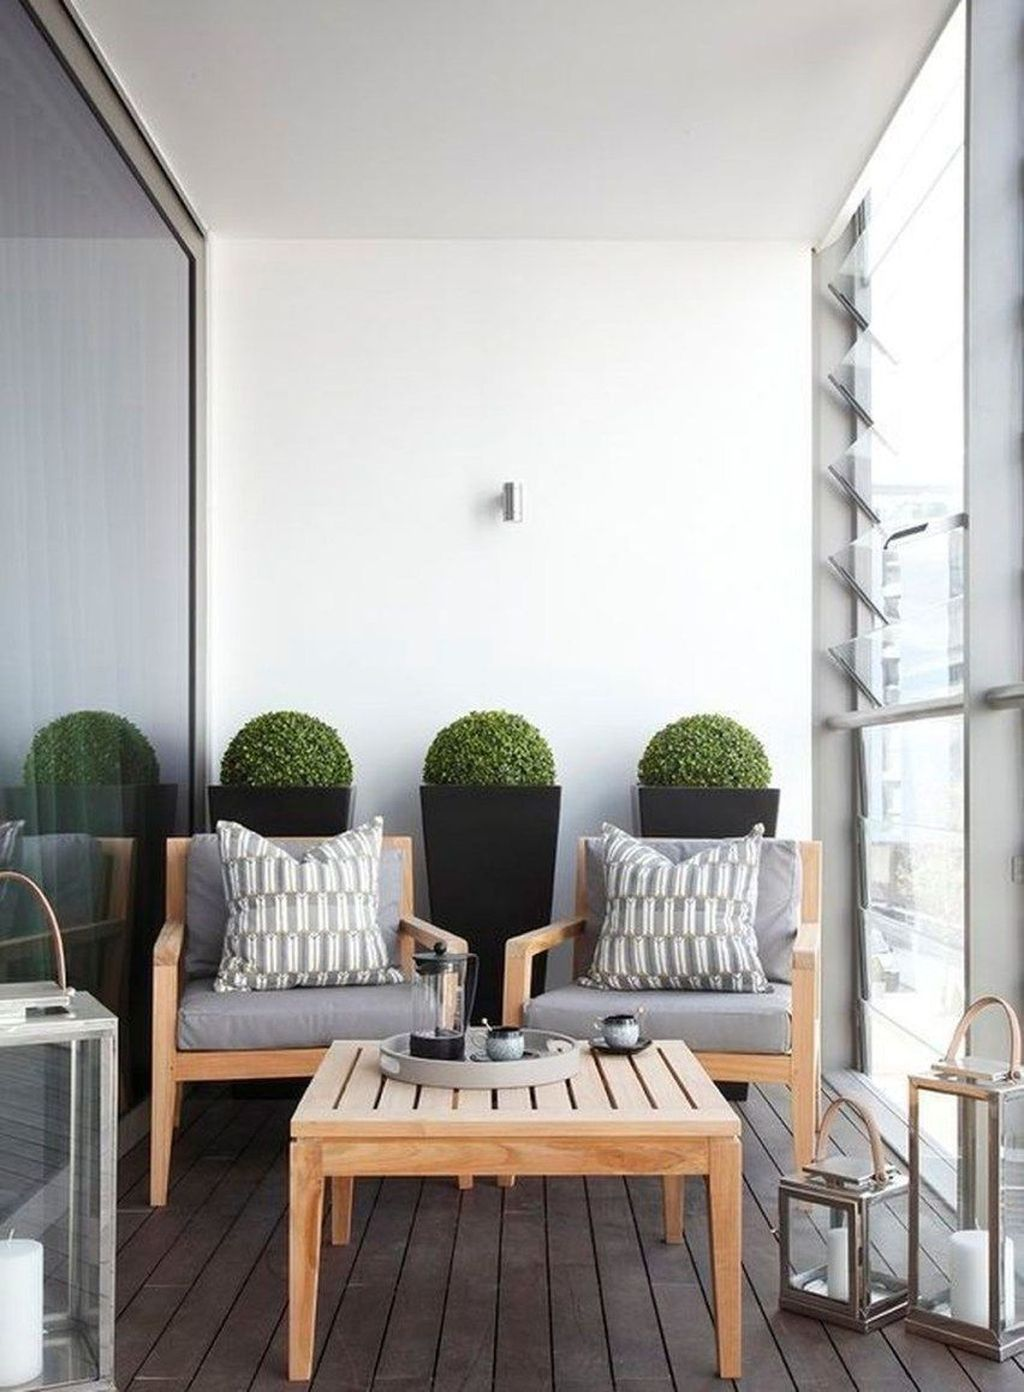 45 Awesome Small Balcony Ideas For Apartment #apartmentbalconydecorating